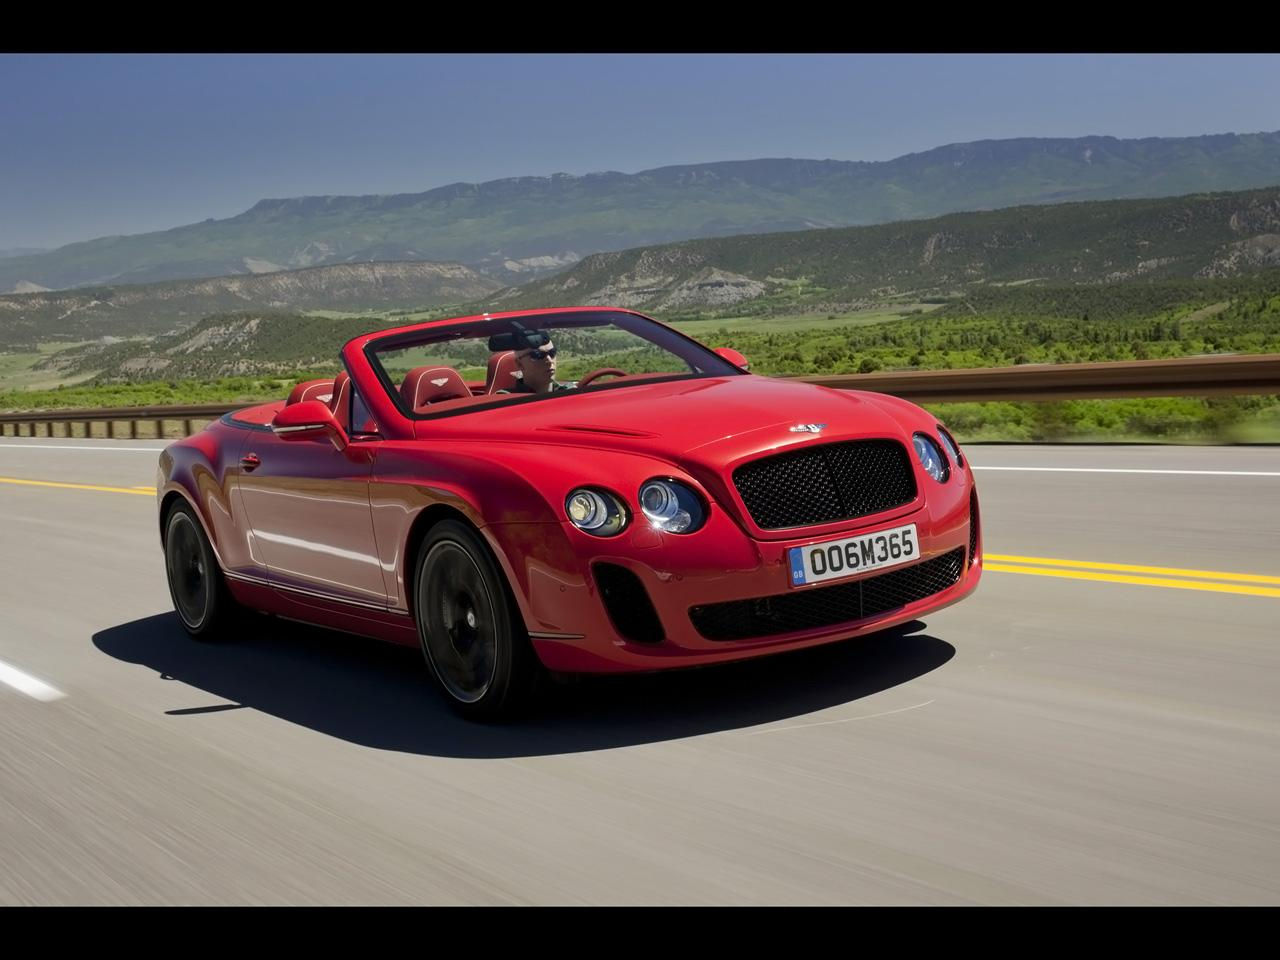 ... 2010 Bentley Continental Supersports Convertible Wallpapers